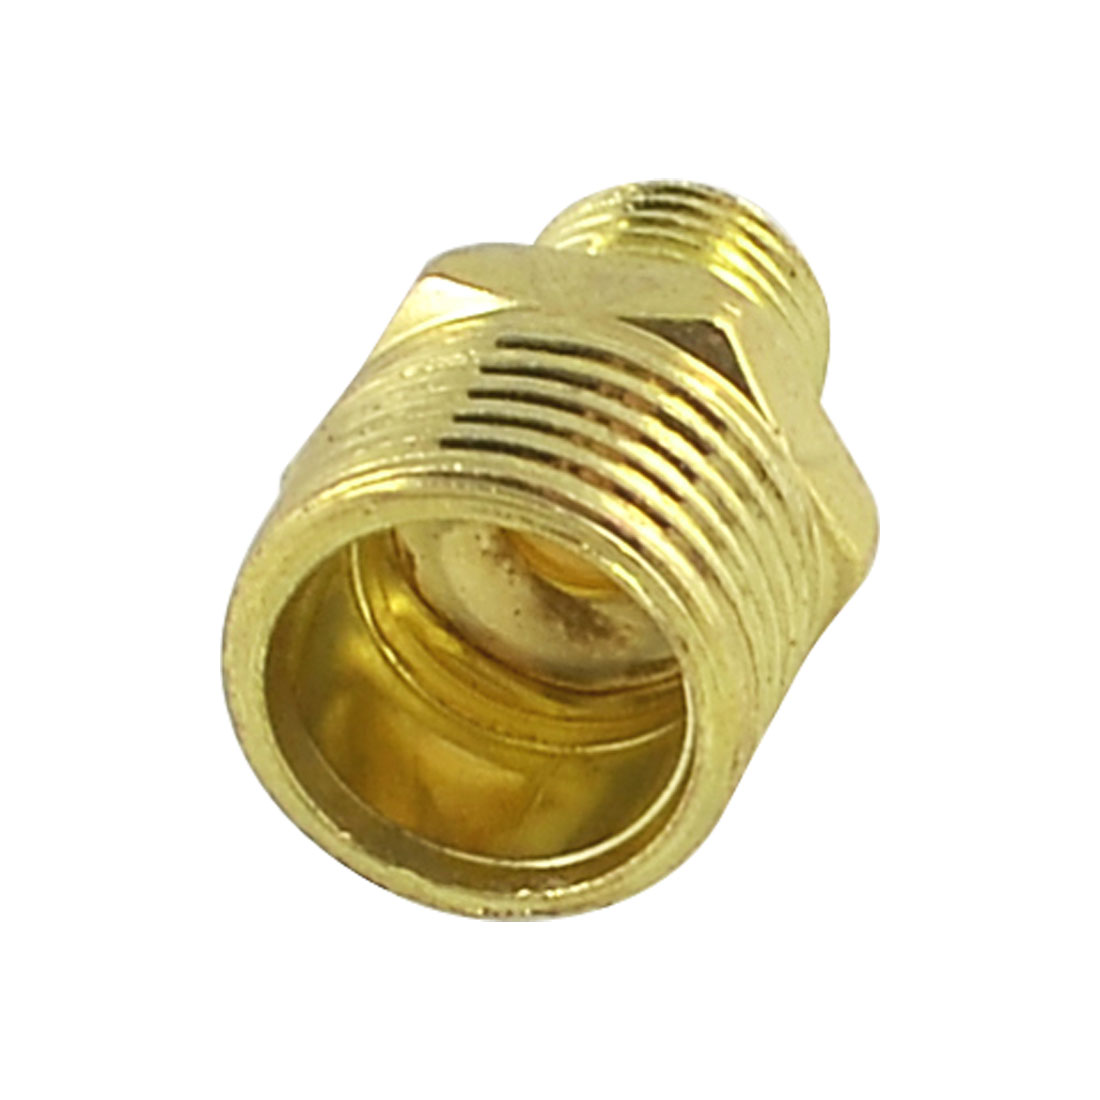 Brass Equal Nipple Male Union Adapter 1/2 to 1/4 for Pneumatic Air Pipe